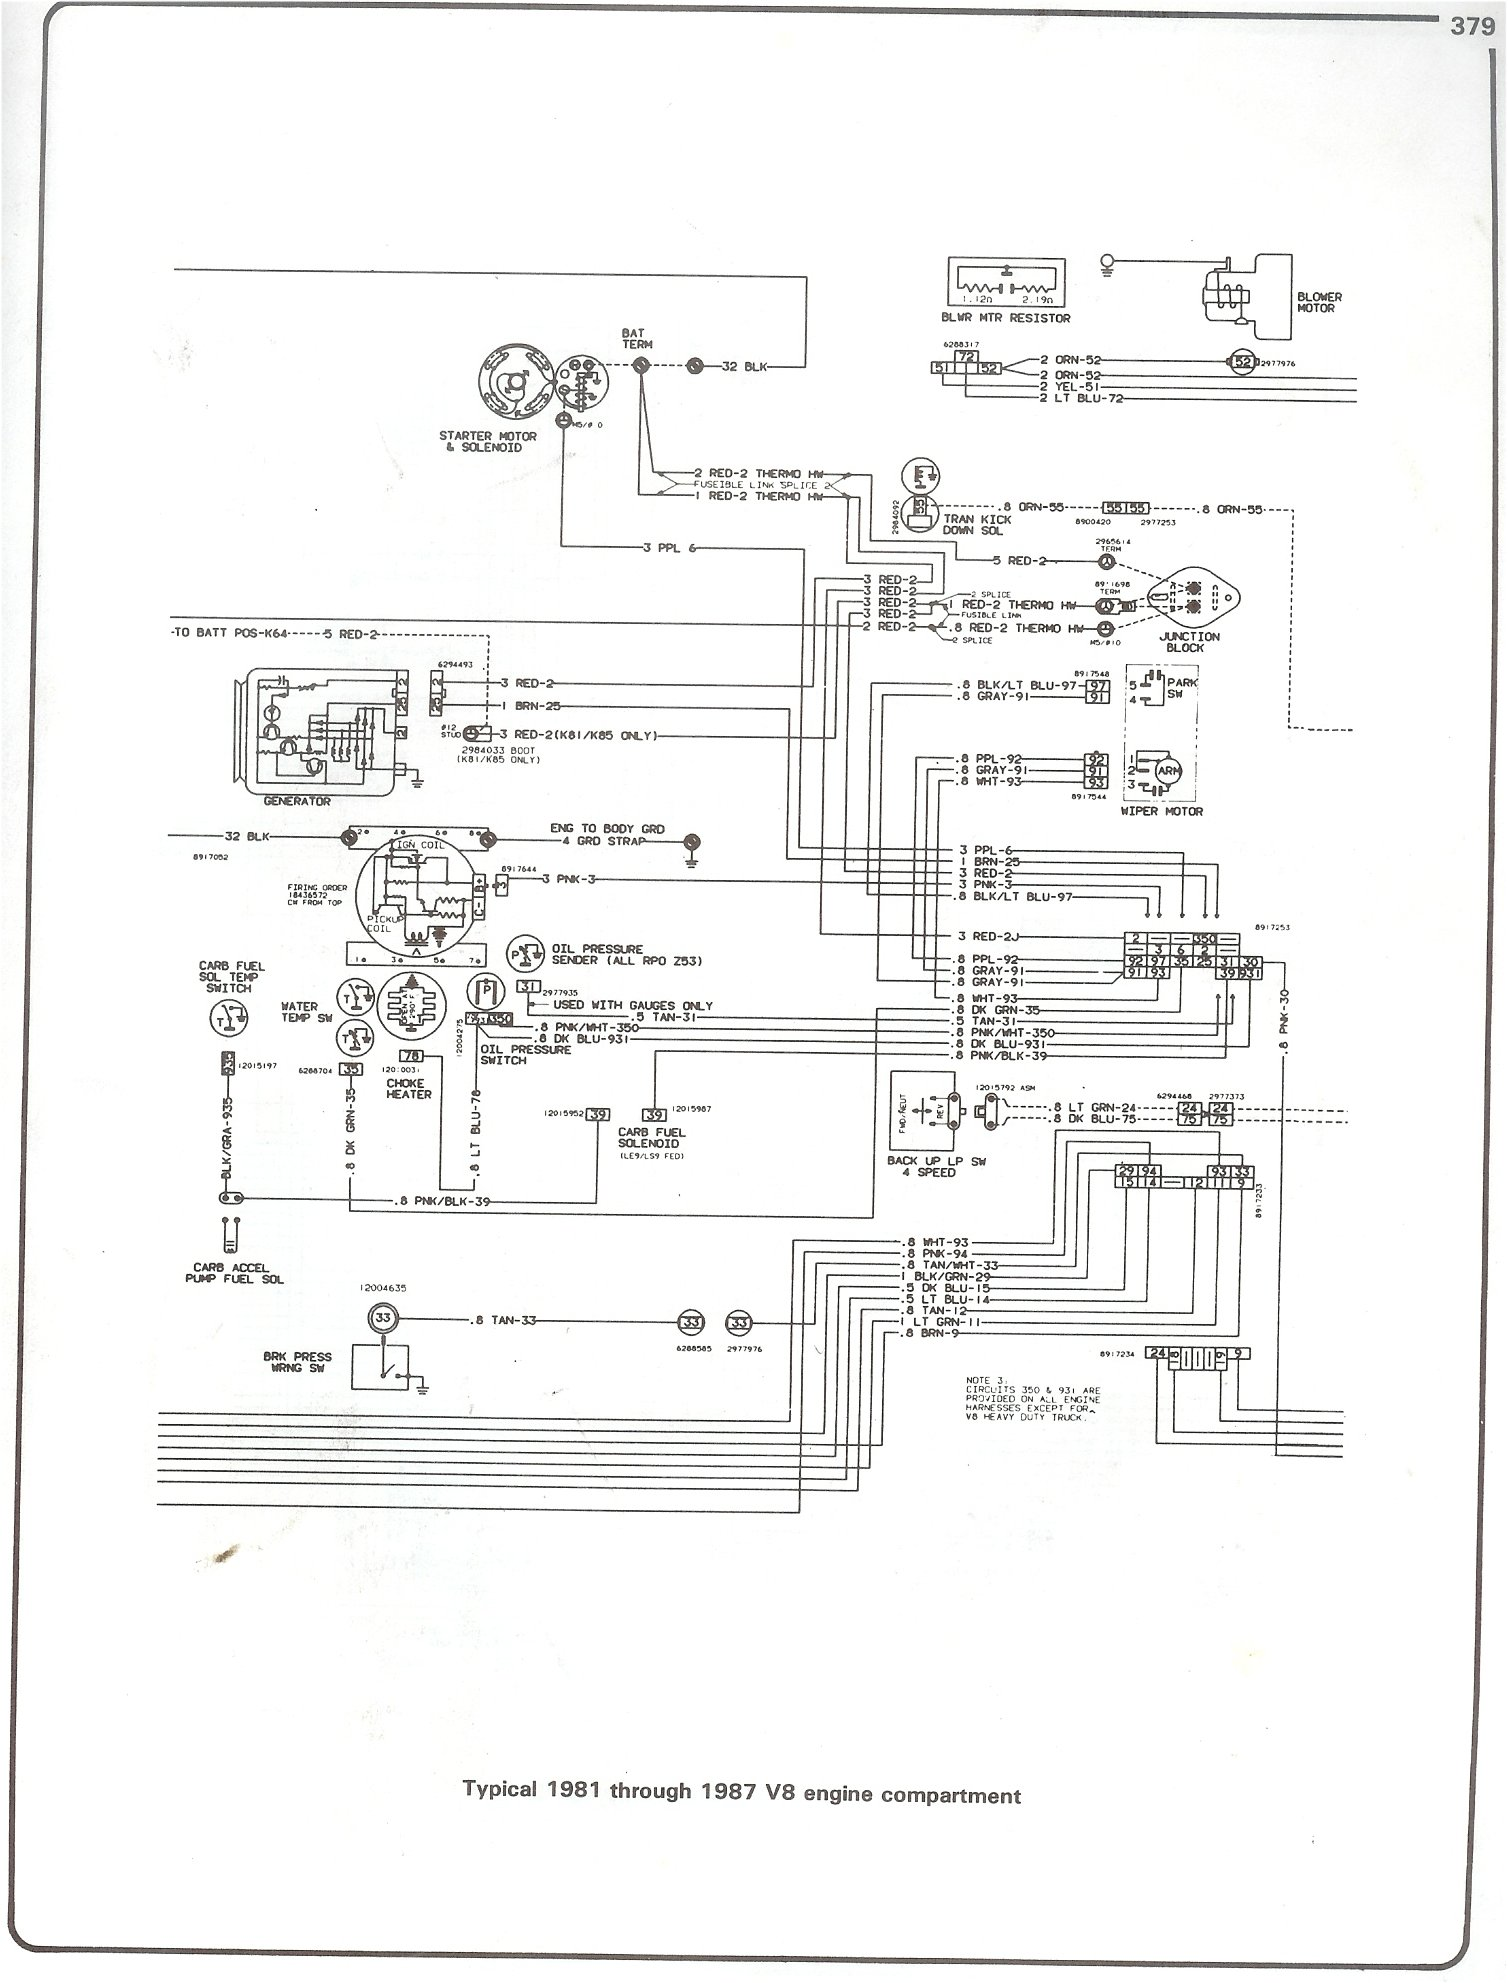 73 Camaro Heater Wiring Diagram Library 1983 Jeep Cj7 81 87 V8 Engine Compartment Complete Diagrams